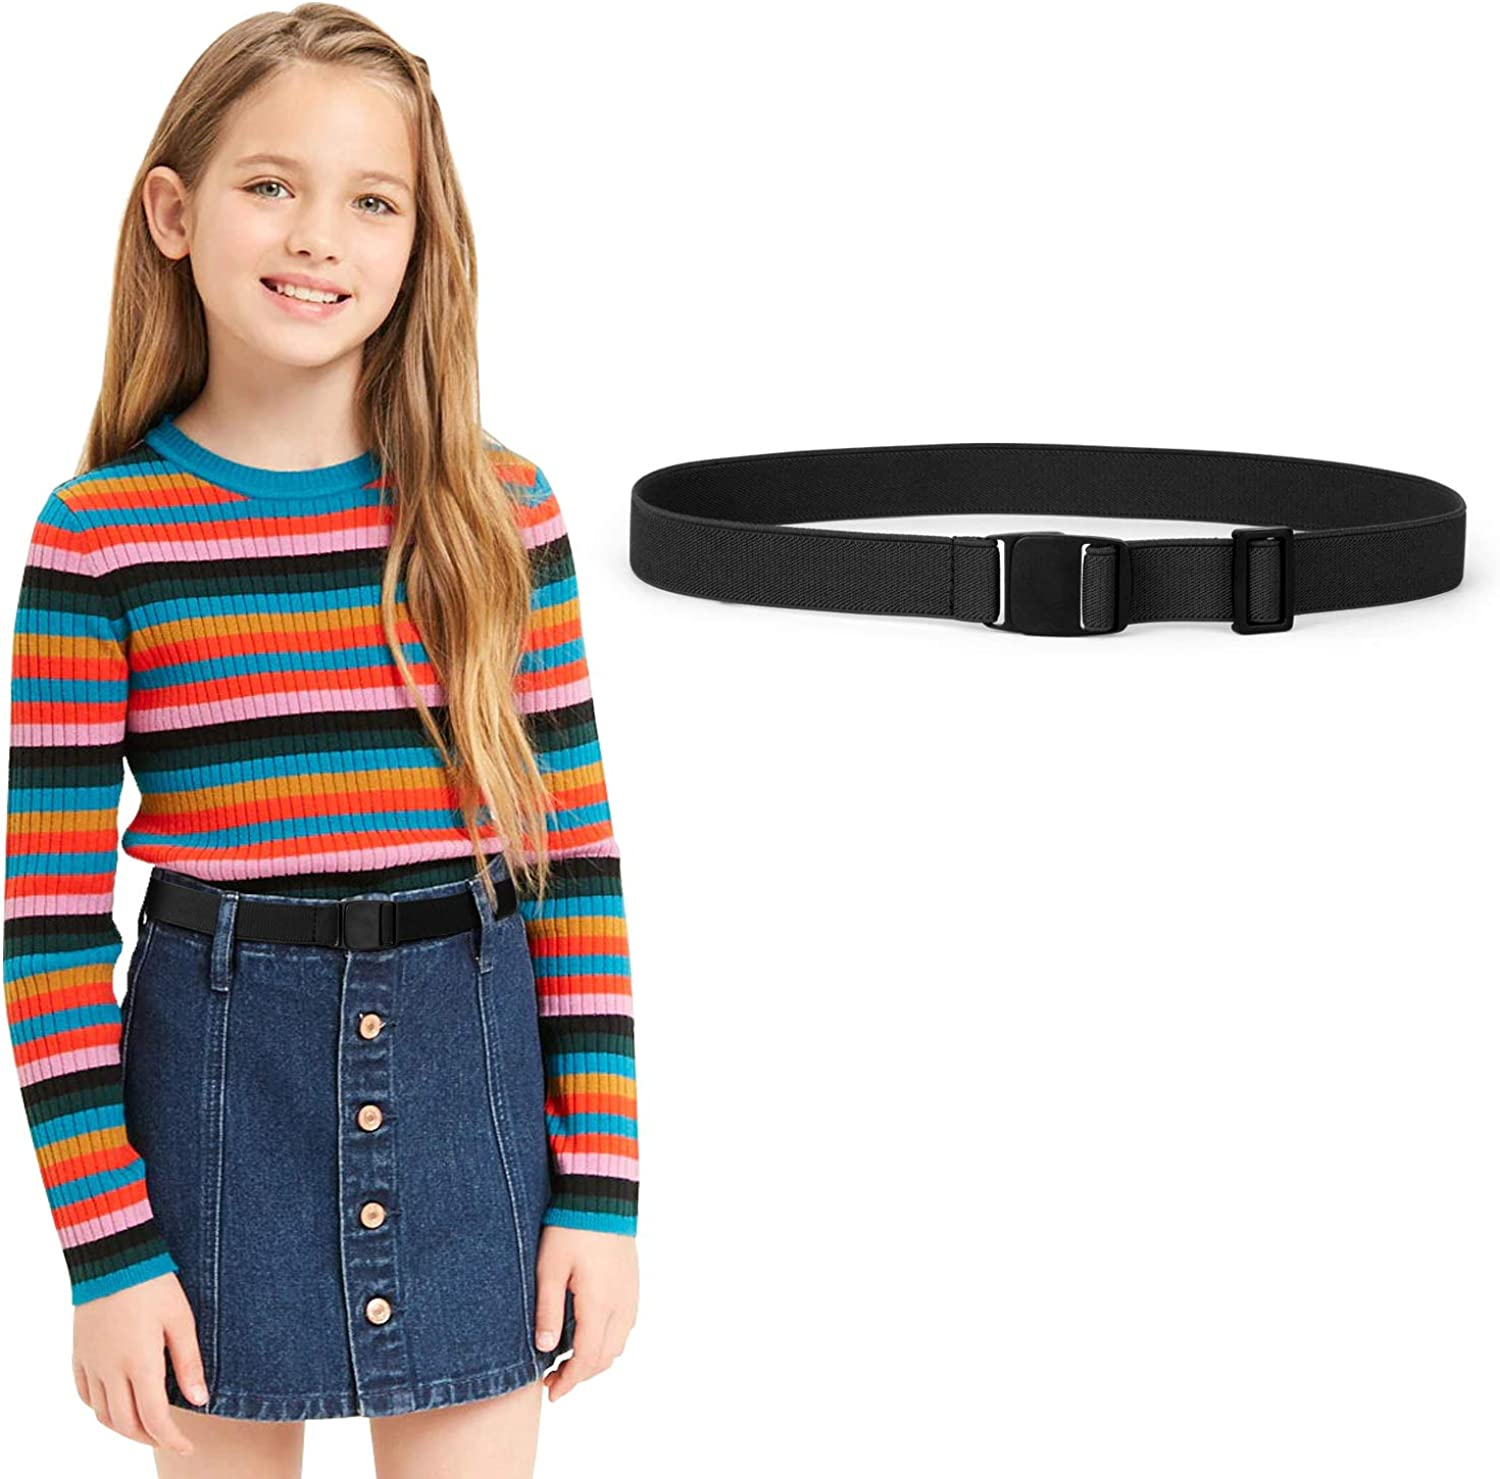 kids Belts Amazon.com: JASGOOD Kids Nickel Free Adjustable Elastic Belts for Pants  Children Stretch Belts for Boys and Girls(Suit for waist size below 26Inch,  02-Black): Clothing